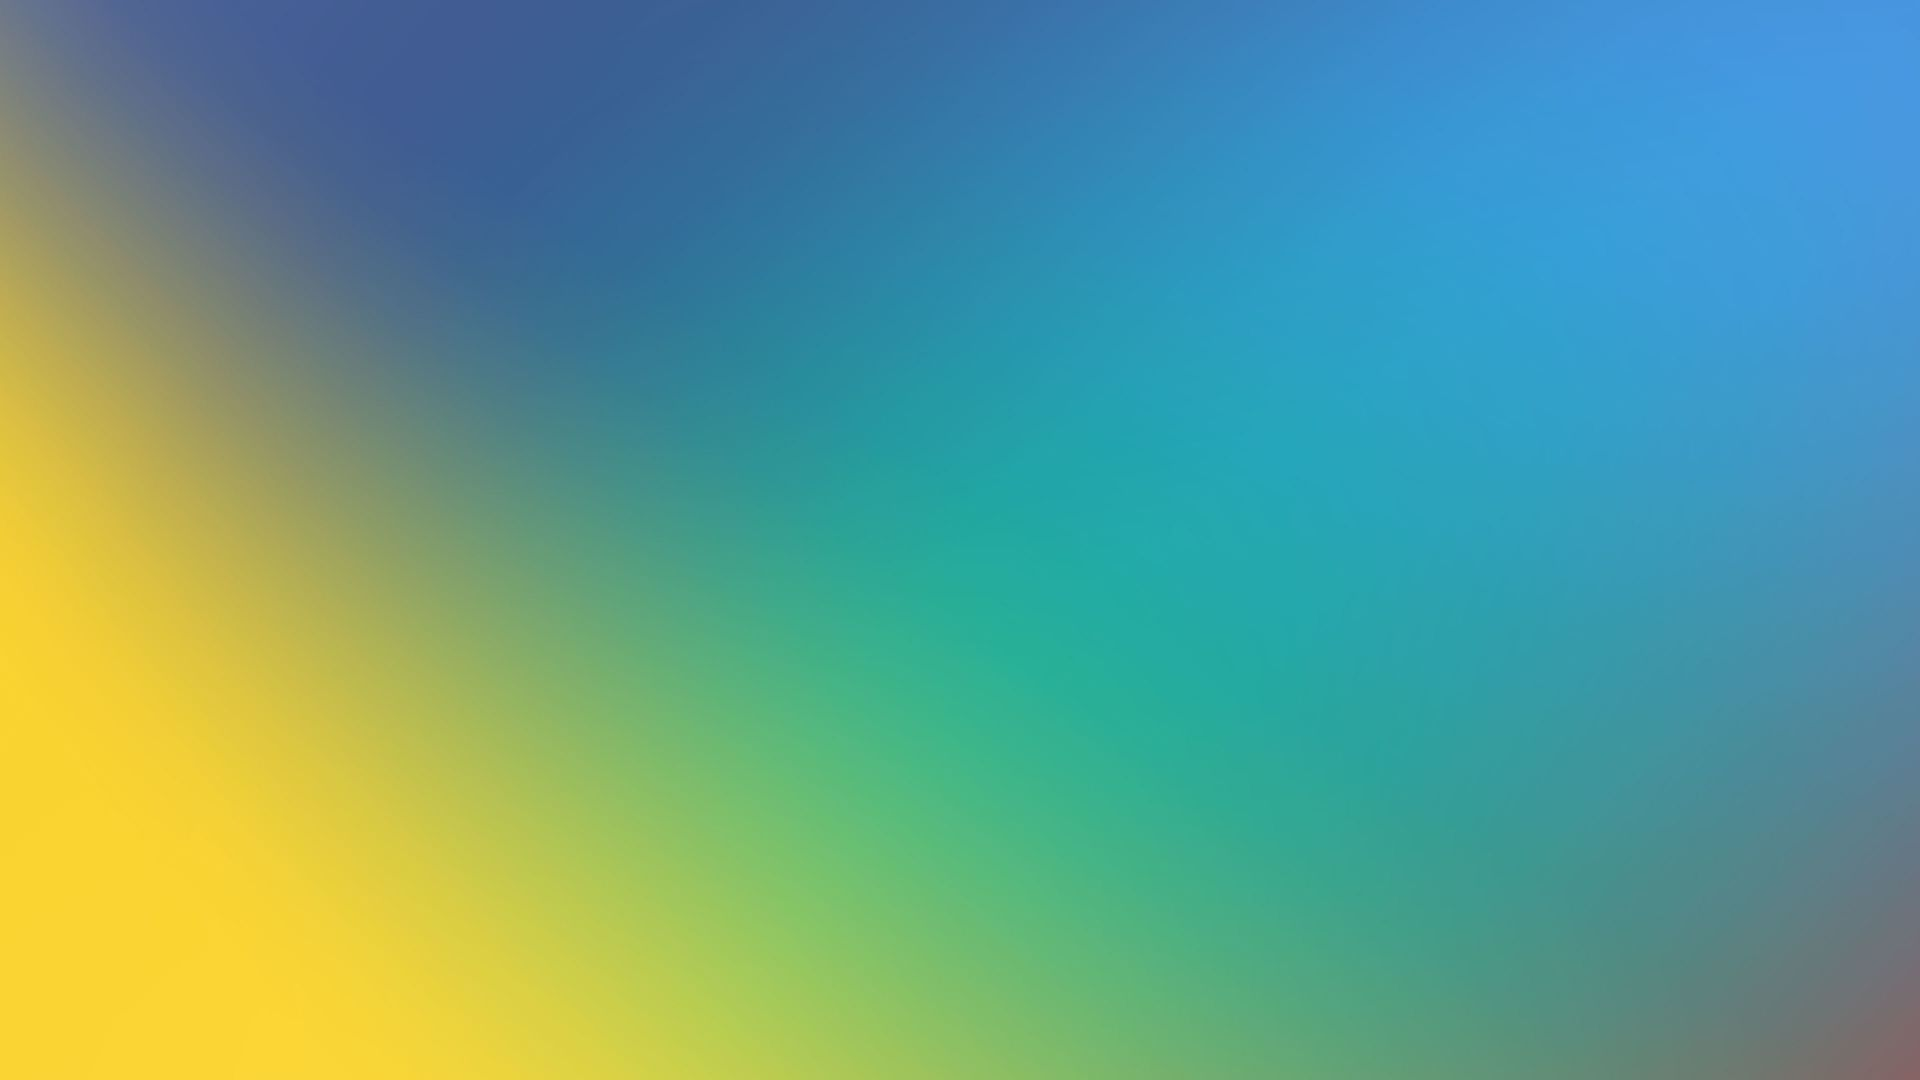 Wallpaper Gradient, blue yellow, abstract, 4k